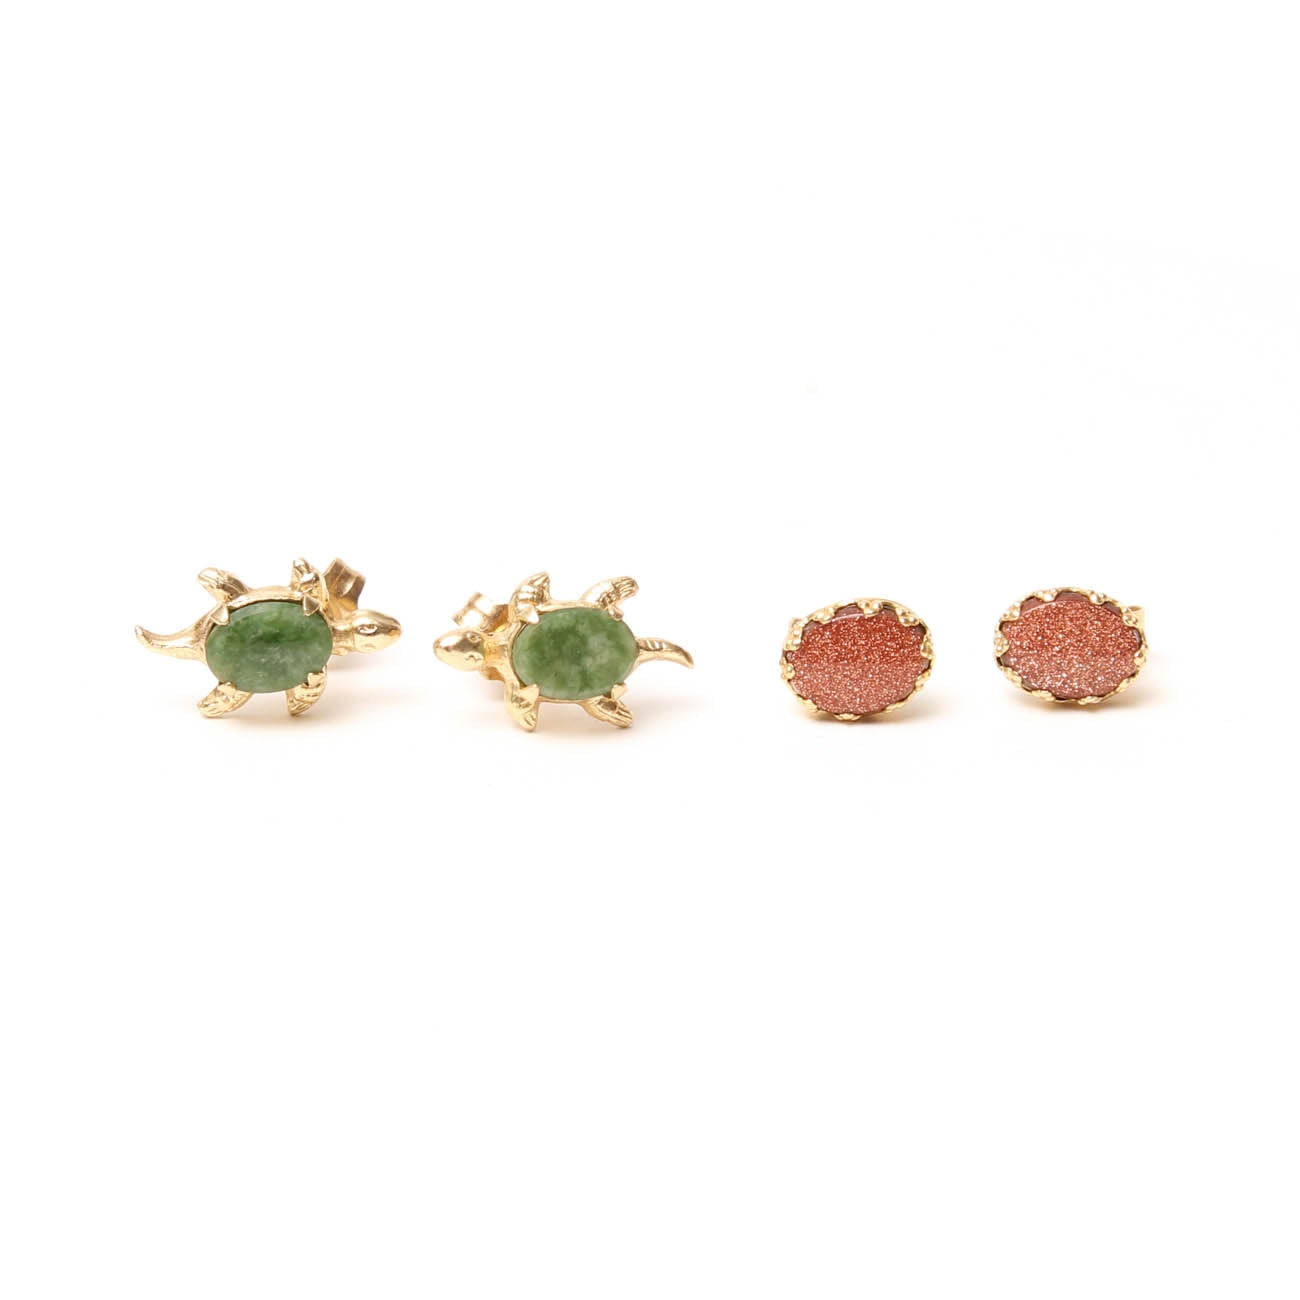 14K Yellow Gold Nephrite and Goldstone Glass Stud Earrings